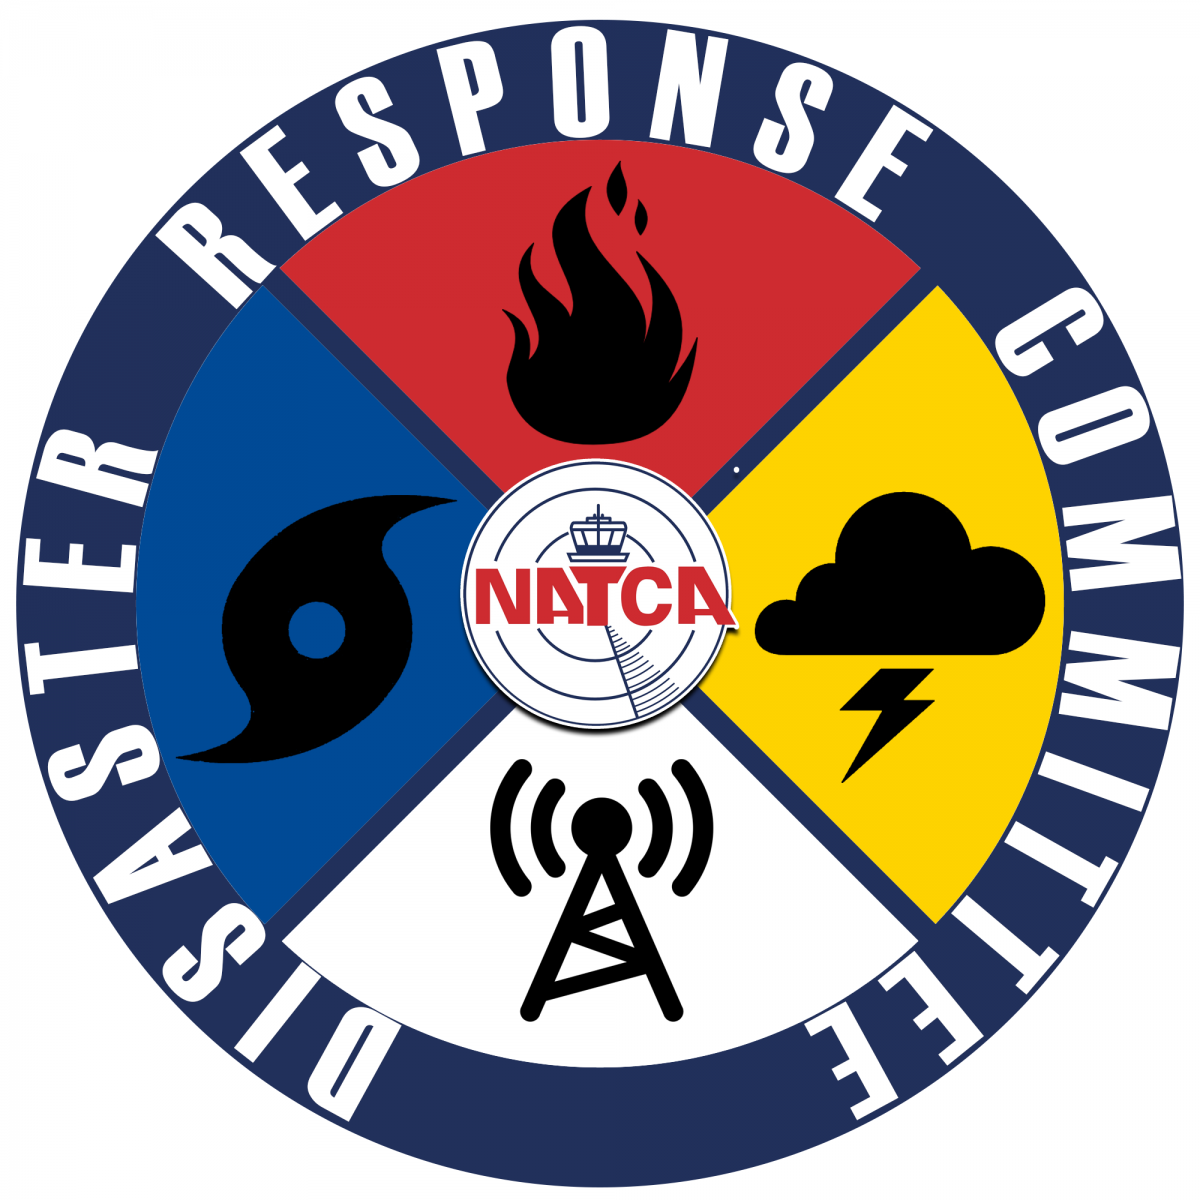 NATCA Disaster Relief Fund